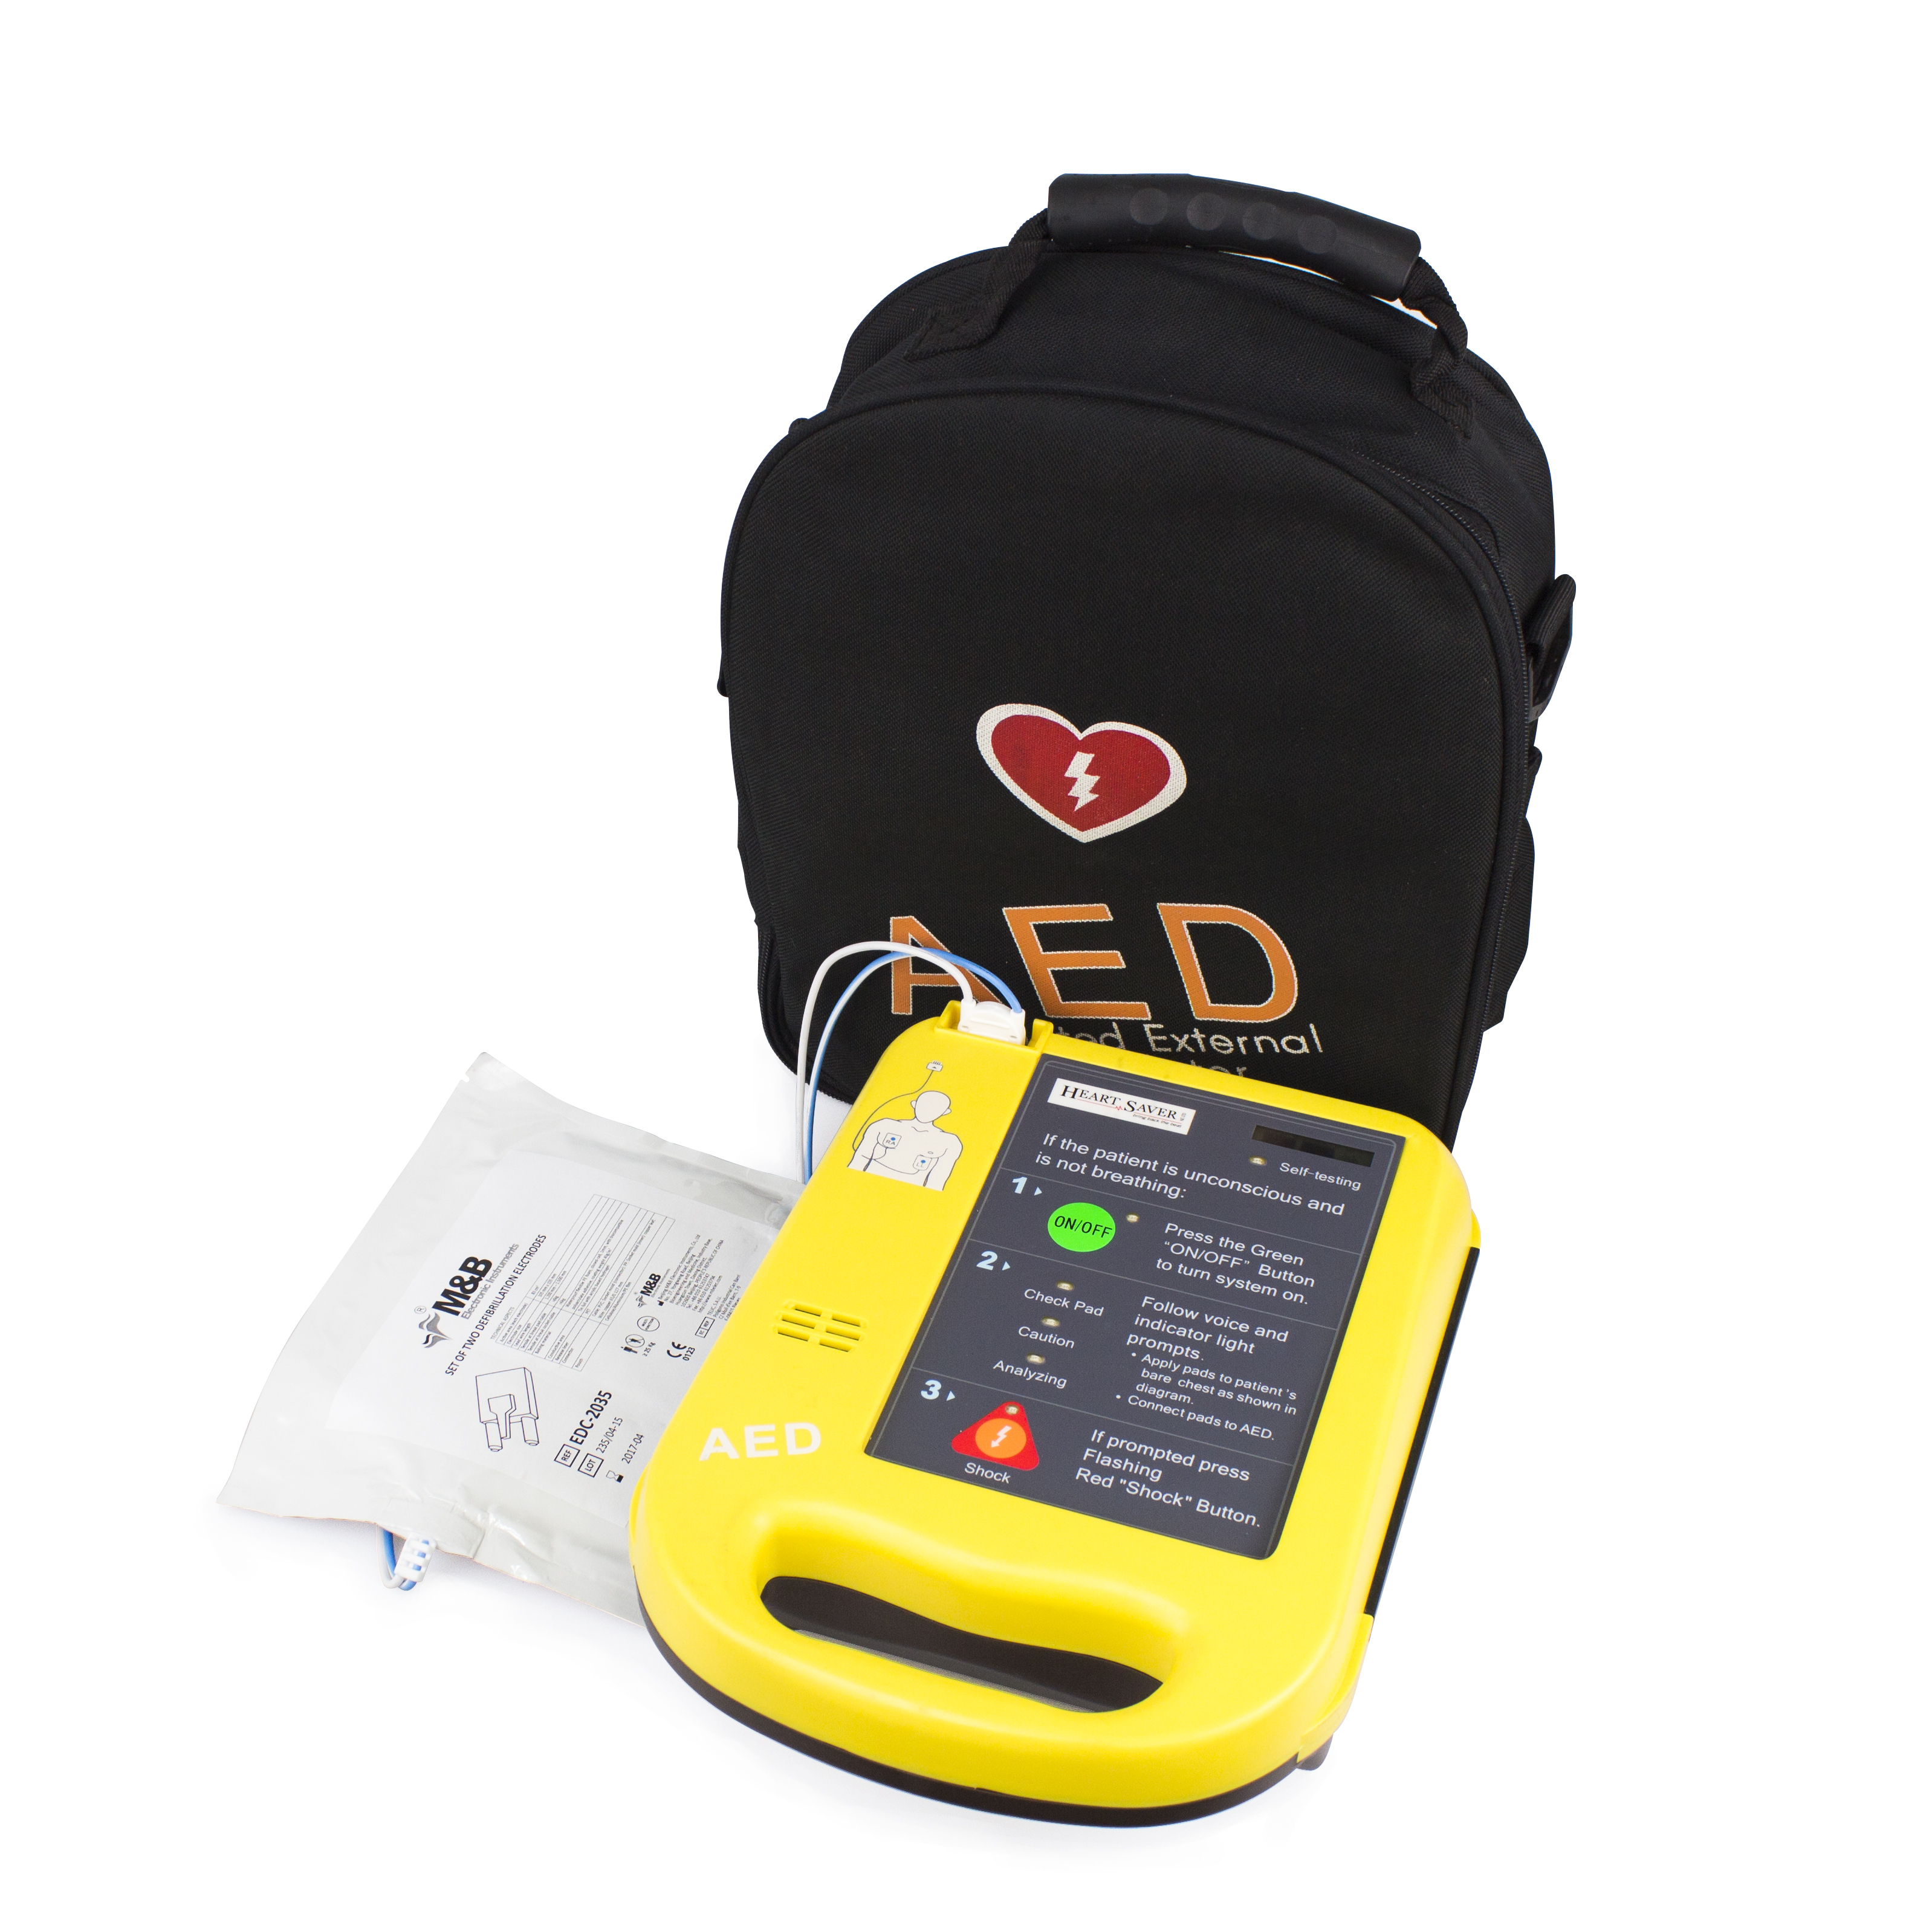 heart-saver-aed-70000